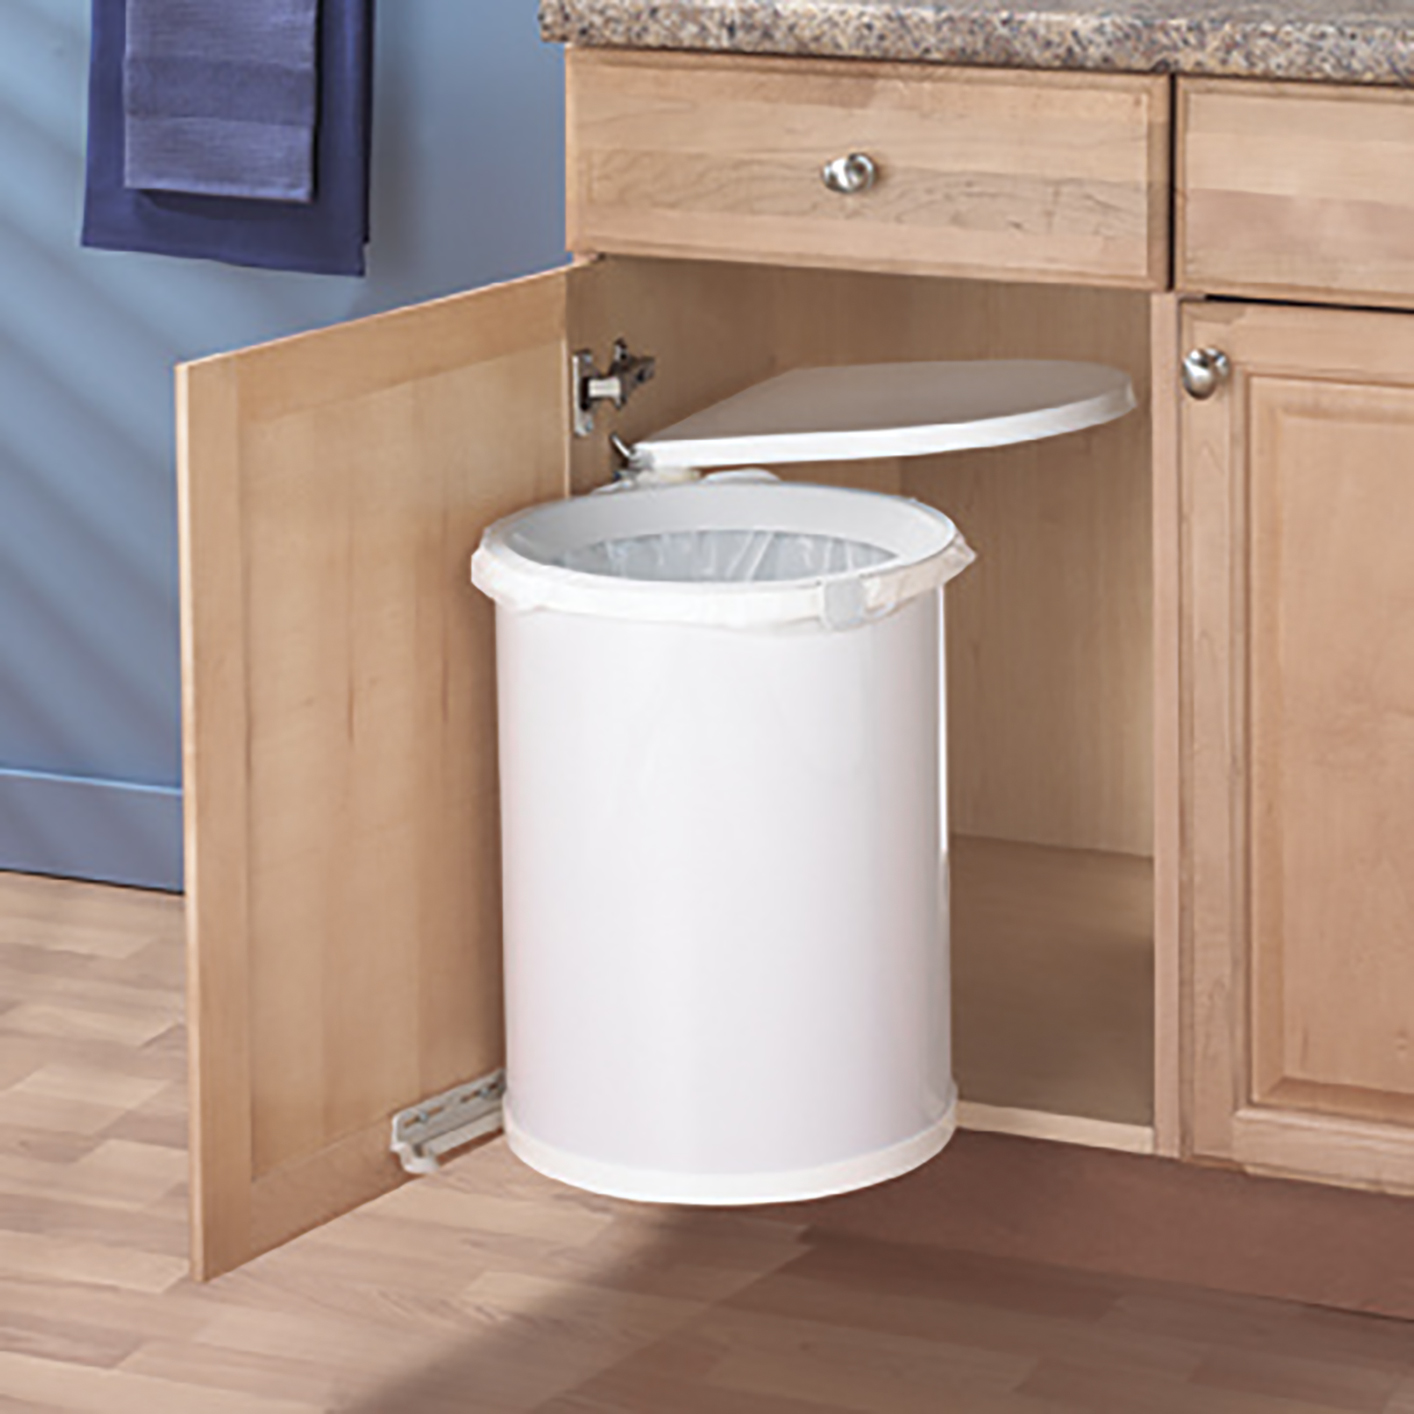 door mounted kitchen garbage can with lid buy old cabinets pivot out waste bin 32 qt white ktm32 w marathon